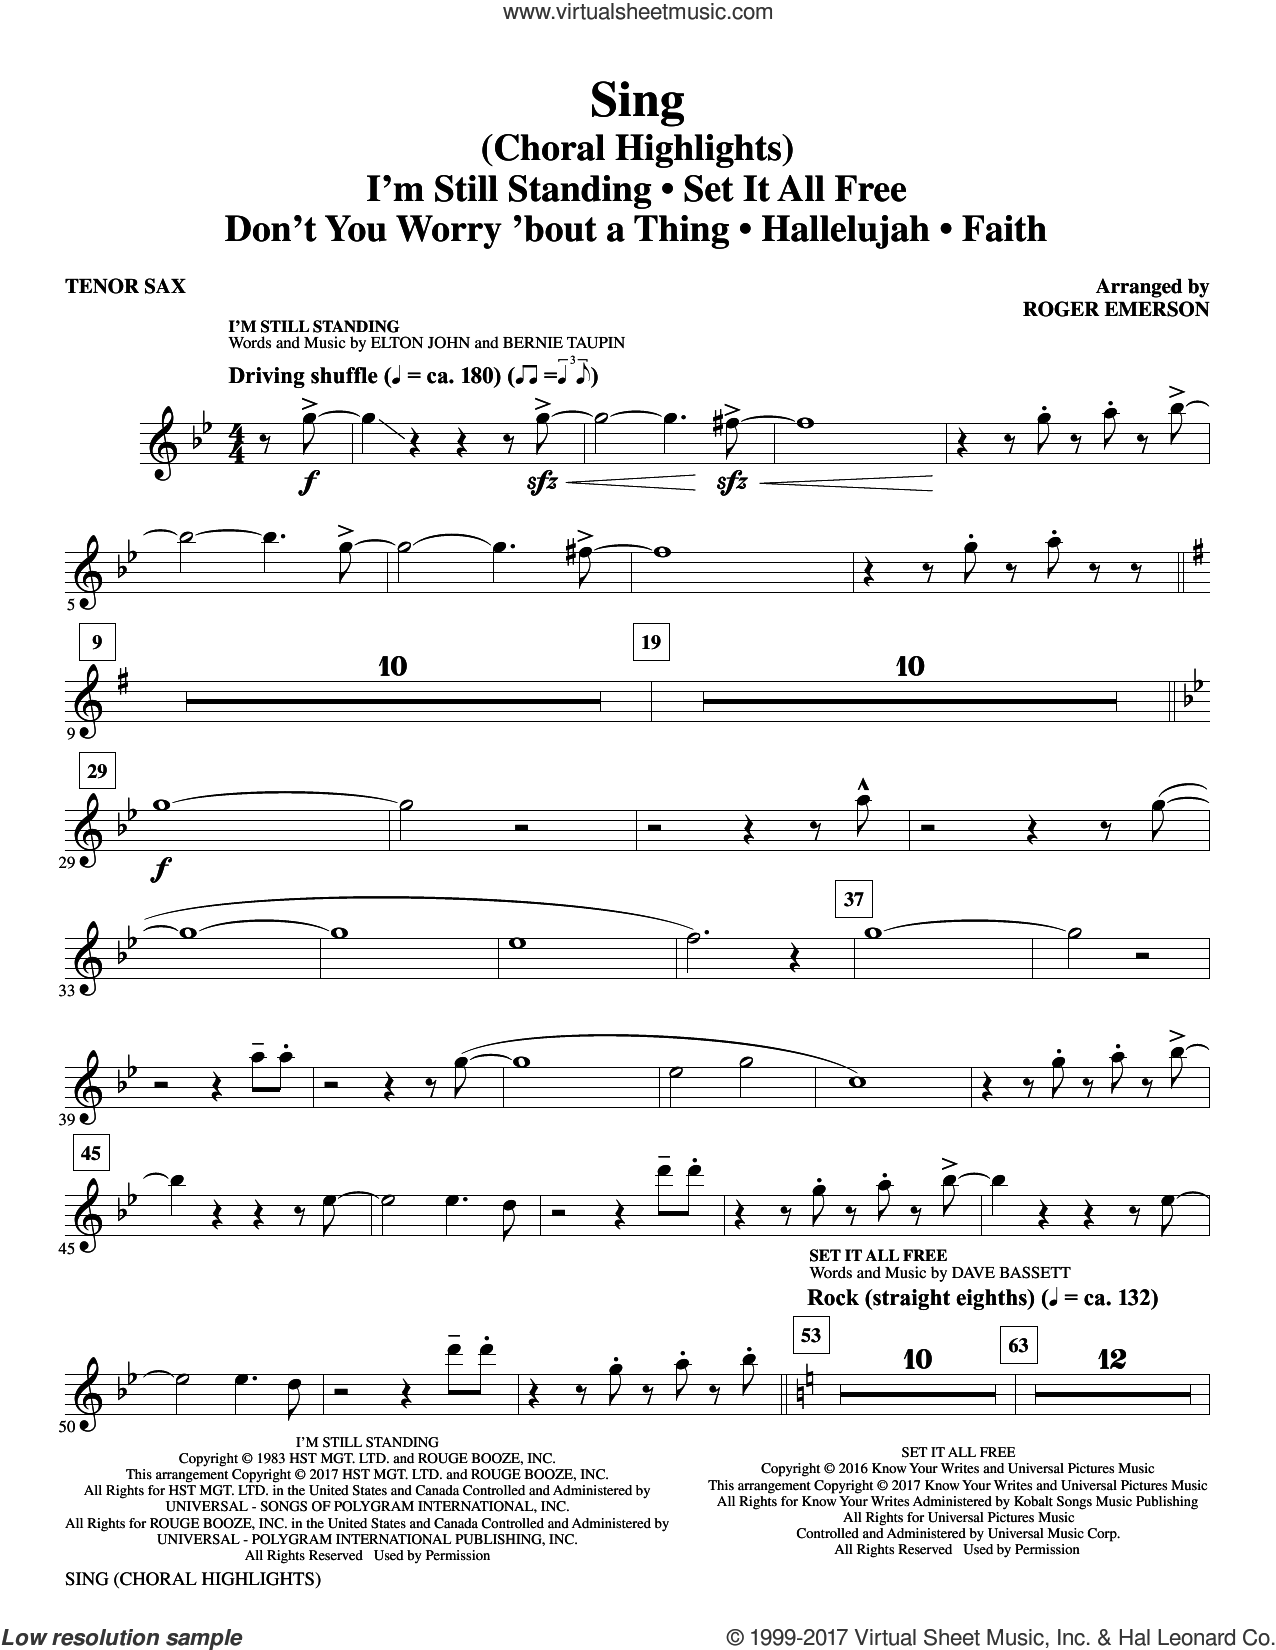 Sing (Choral Highlights) sheet music for orchestra/band (Bb tenor saxophone) by Leonard Cohen, Roger Emerson and Justin Timberlake & Matt Morris featuring Charlie Sexton, intermediate. Score Image Preview.